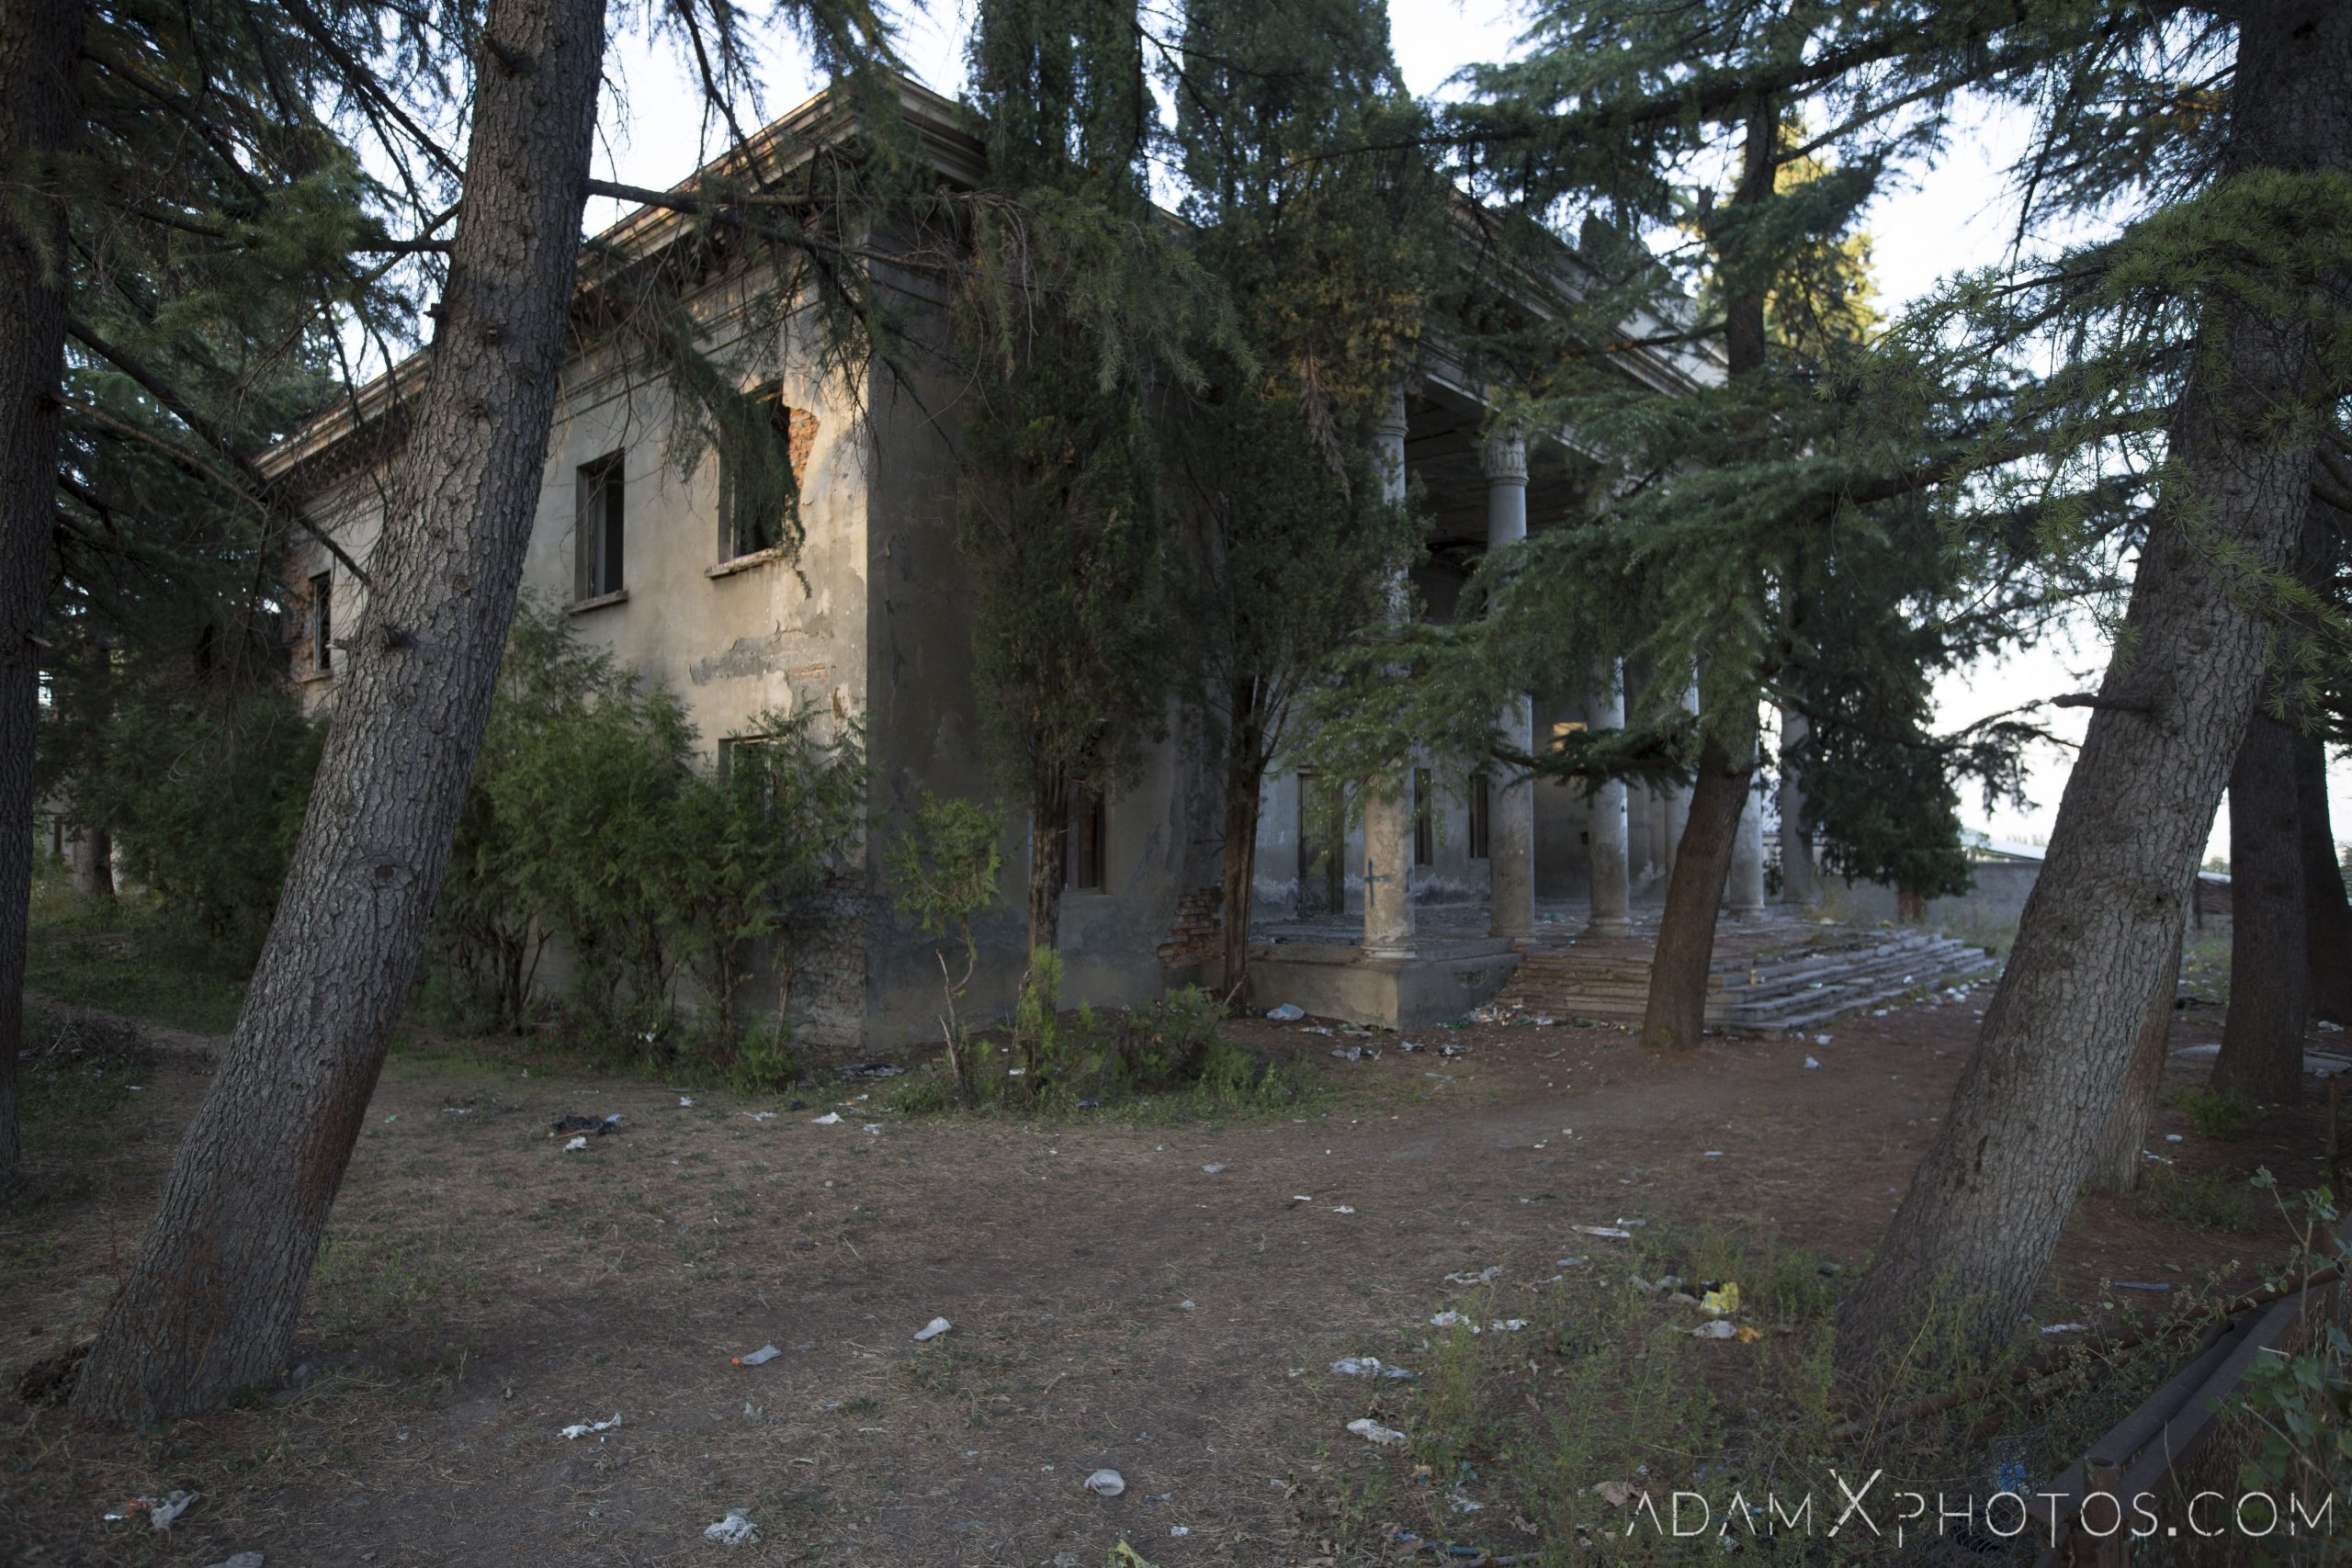 Exterior external front Burned burnt collapsed roof metal House of Culture Palace rural Soviet era Georgia Adam X AdamXPhotos Urbex Urban Exploration 2018 Abandoned Access History decay ruins lost forgotten derelict location creepy haunting eerie security